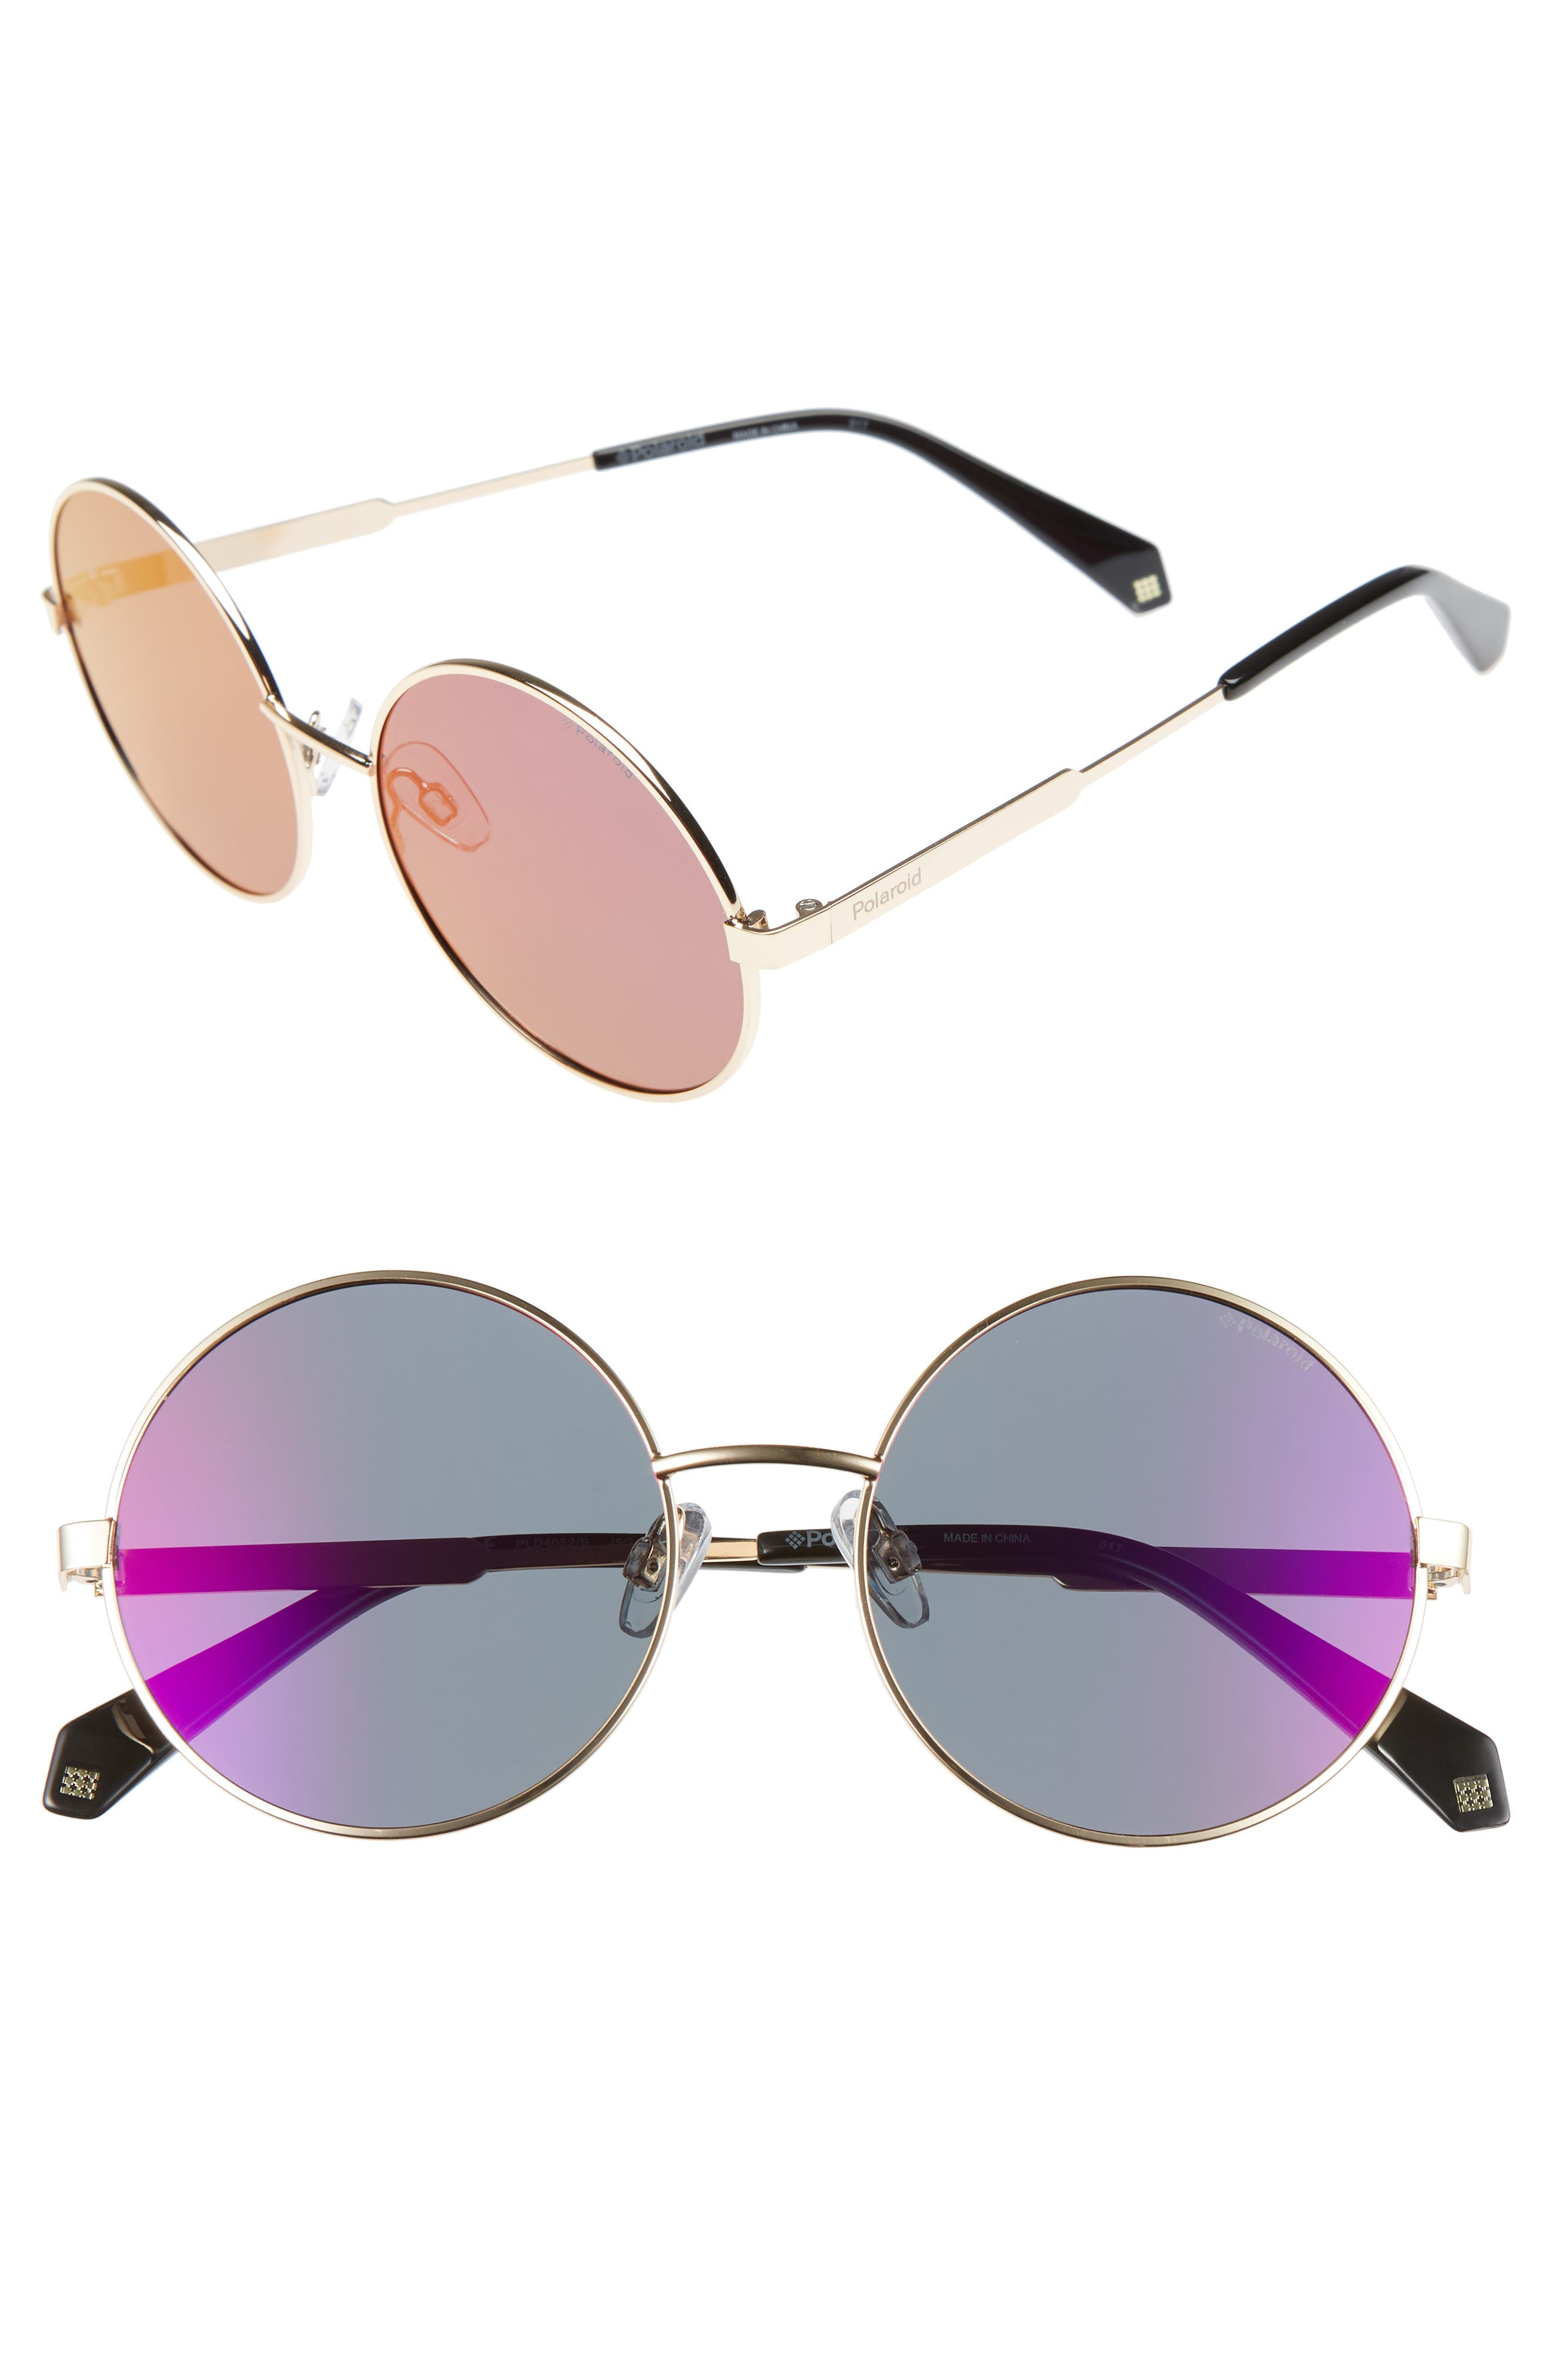 55mm Polarized Round Sunglasses,                             Main thumbnail 2, color,